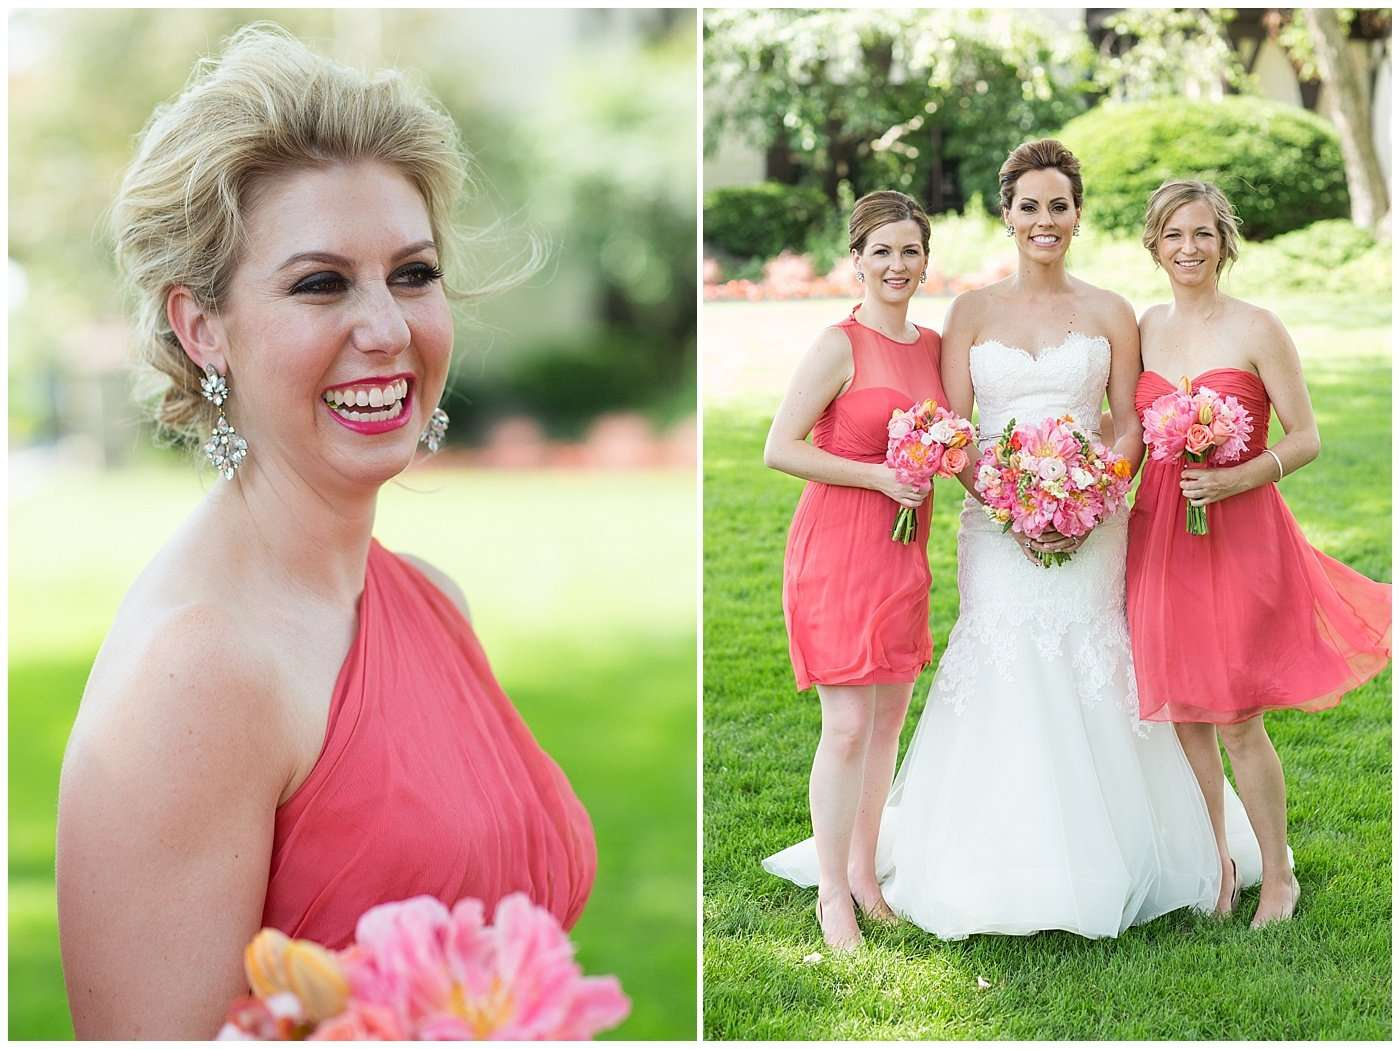 Kim & Lee | A Summer Wedding at Brookside Country Club 82